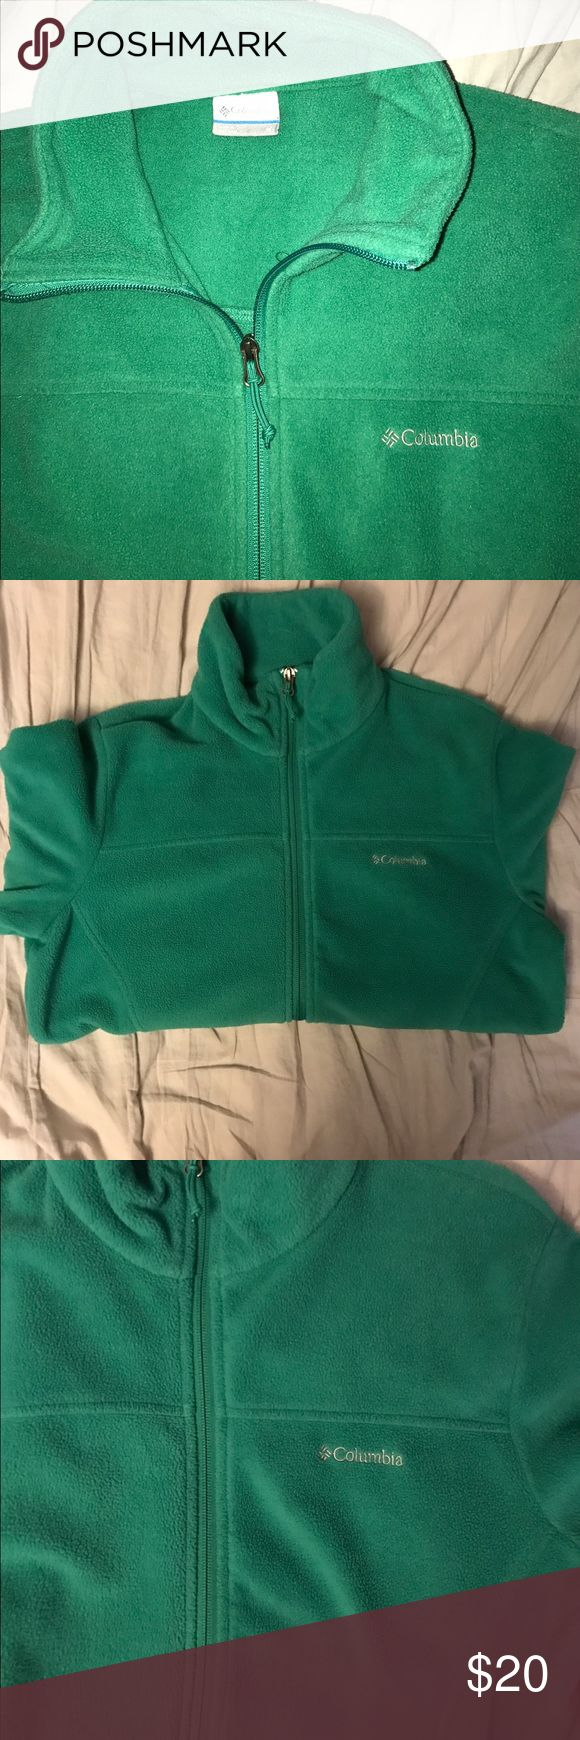 Full Zip Fleece Jacket I bought it at Nordstroms Rack. I wore it maybe once for a couple of hours. It is extremely comfortable and super light! Please don't offer to trade and let me know if you want to see more pictures! Columbia Tops Sweatshirts & Hoodies